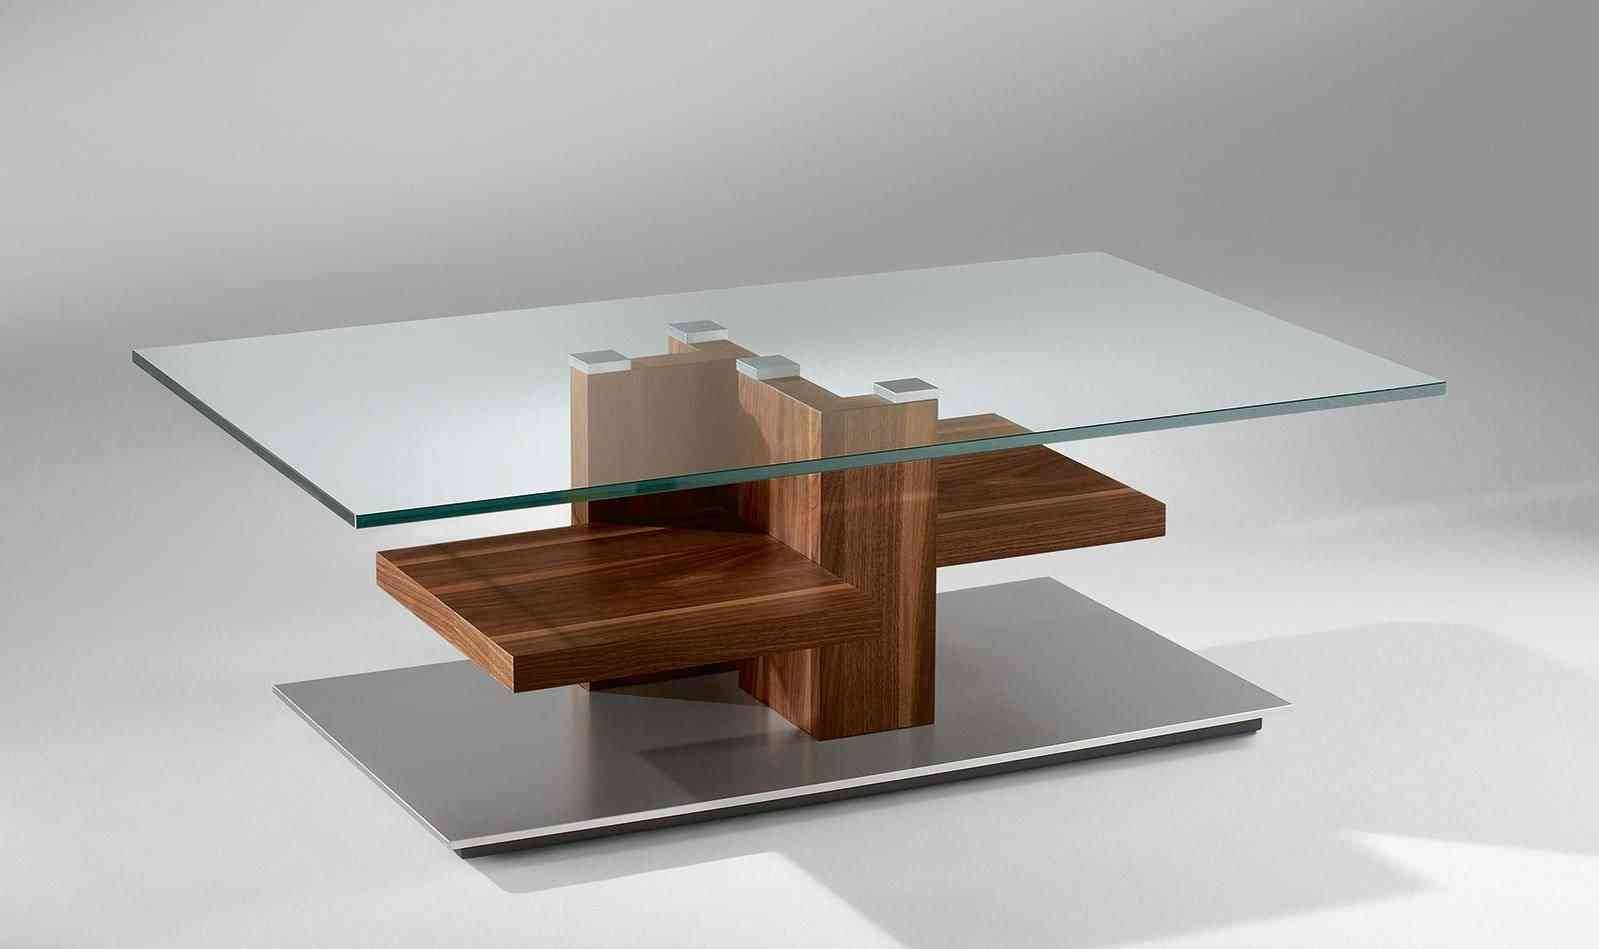 Good Glass Wood Coffee Table 99 In Inspirational Home Decorating intended for Wooden and Glass Coffee Tables (Image 24 of 30)